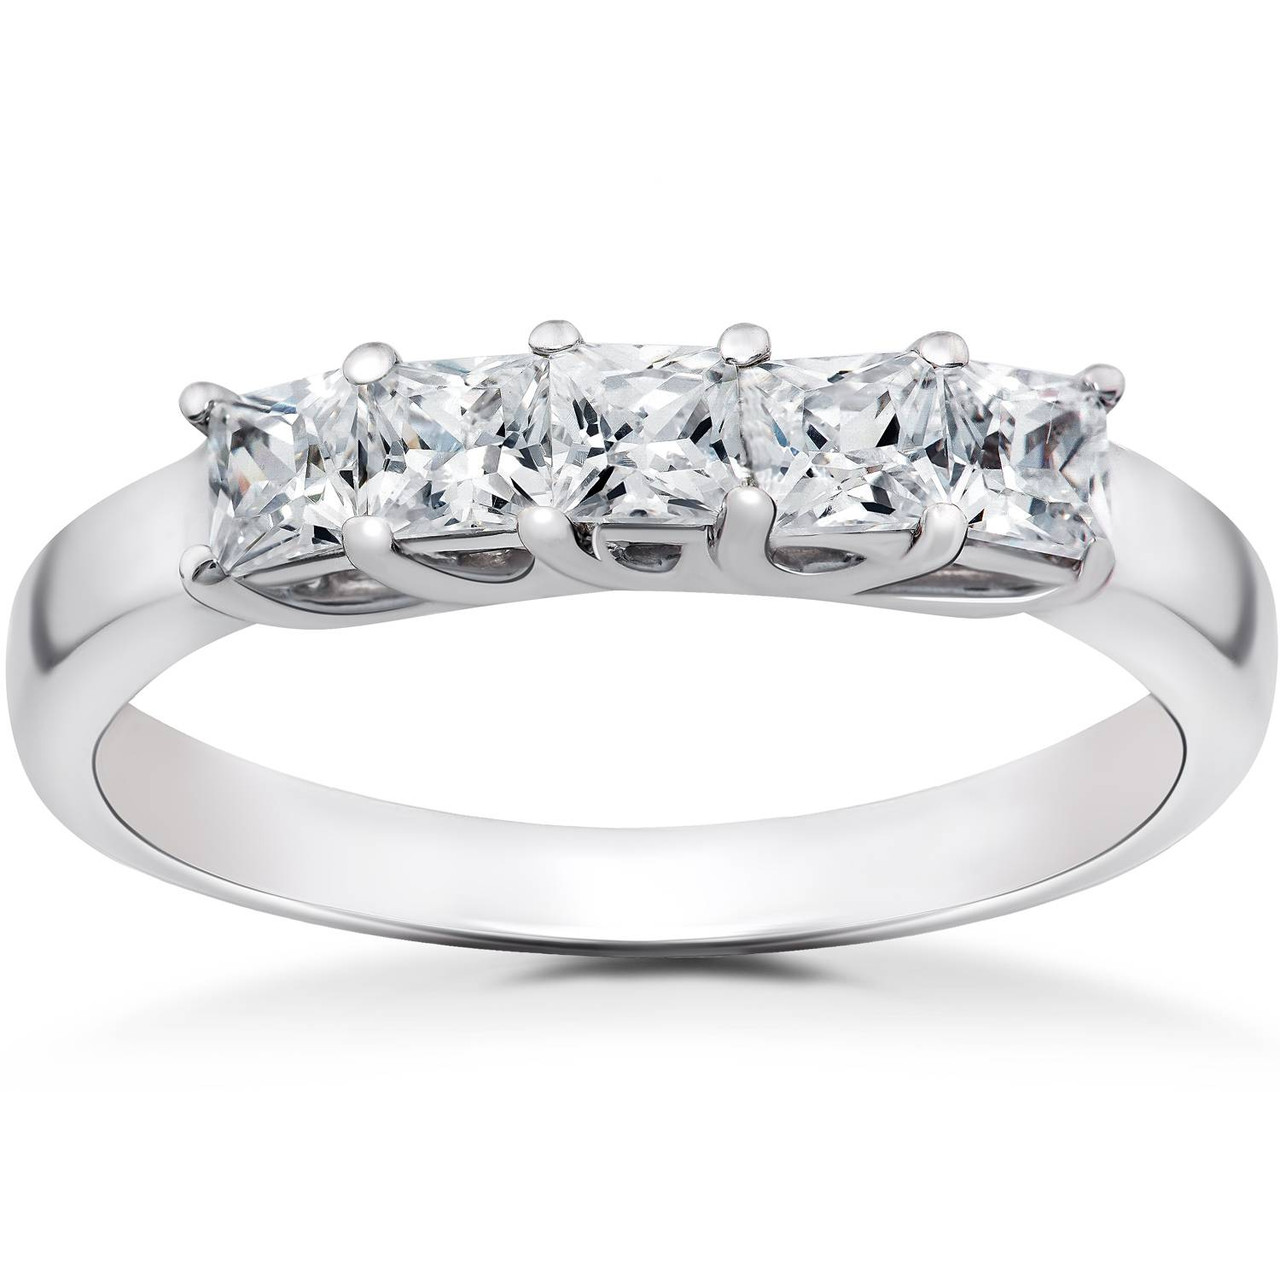 1 Review Sd3d71ba2asa5ozcloudfront53000589imageswr81501: 3 Stone Wedding Rings Women At Websimilar.org